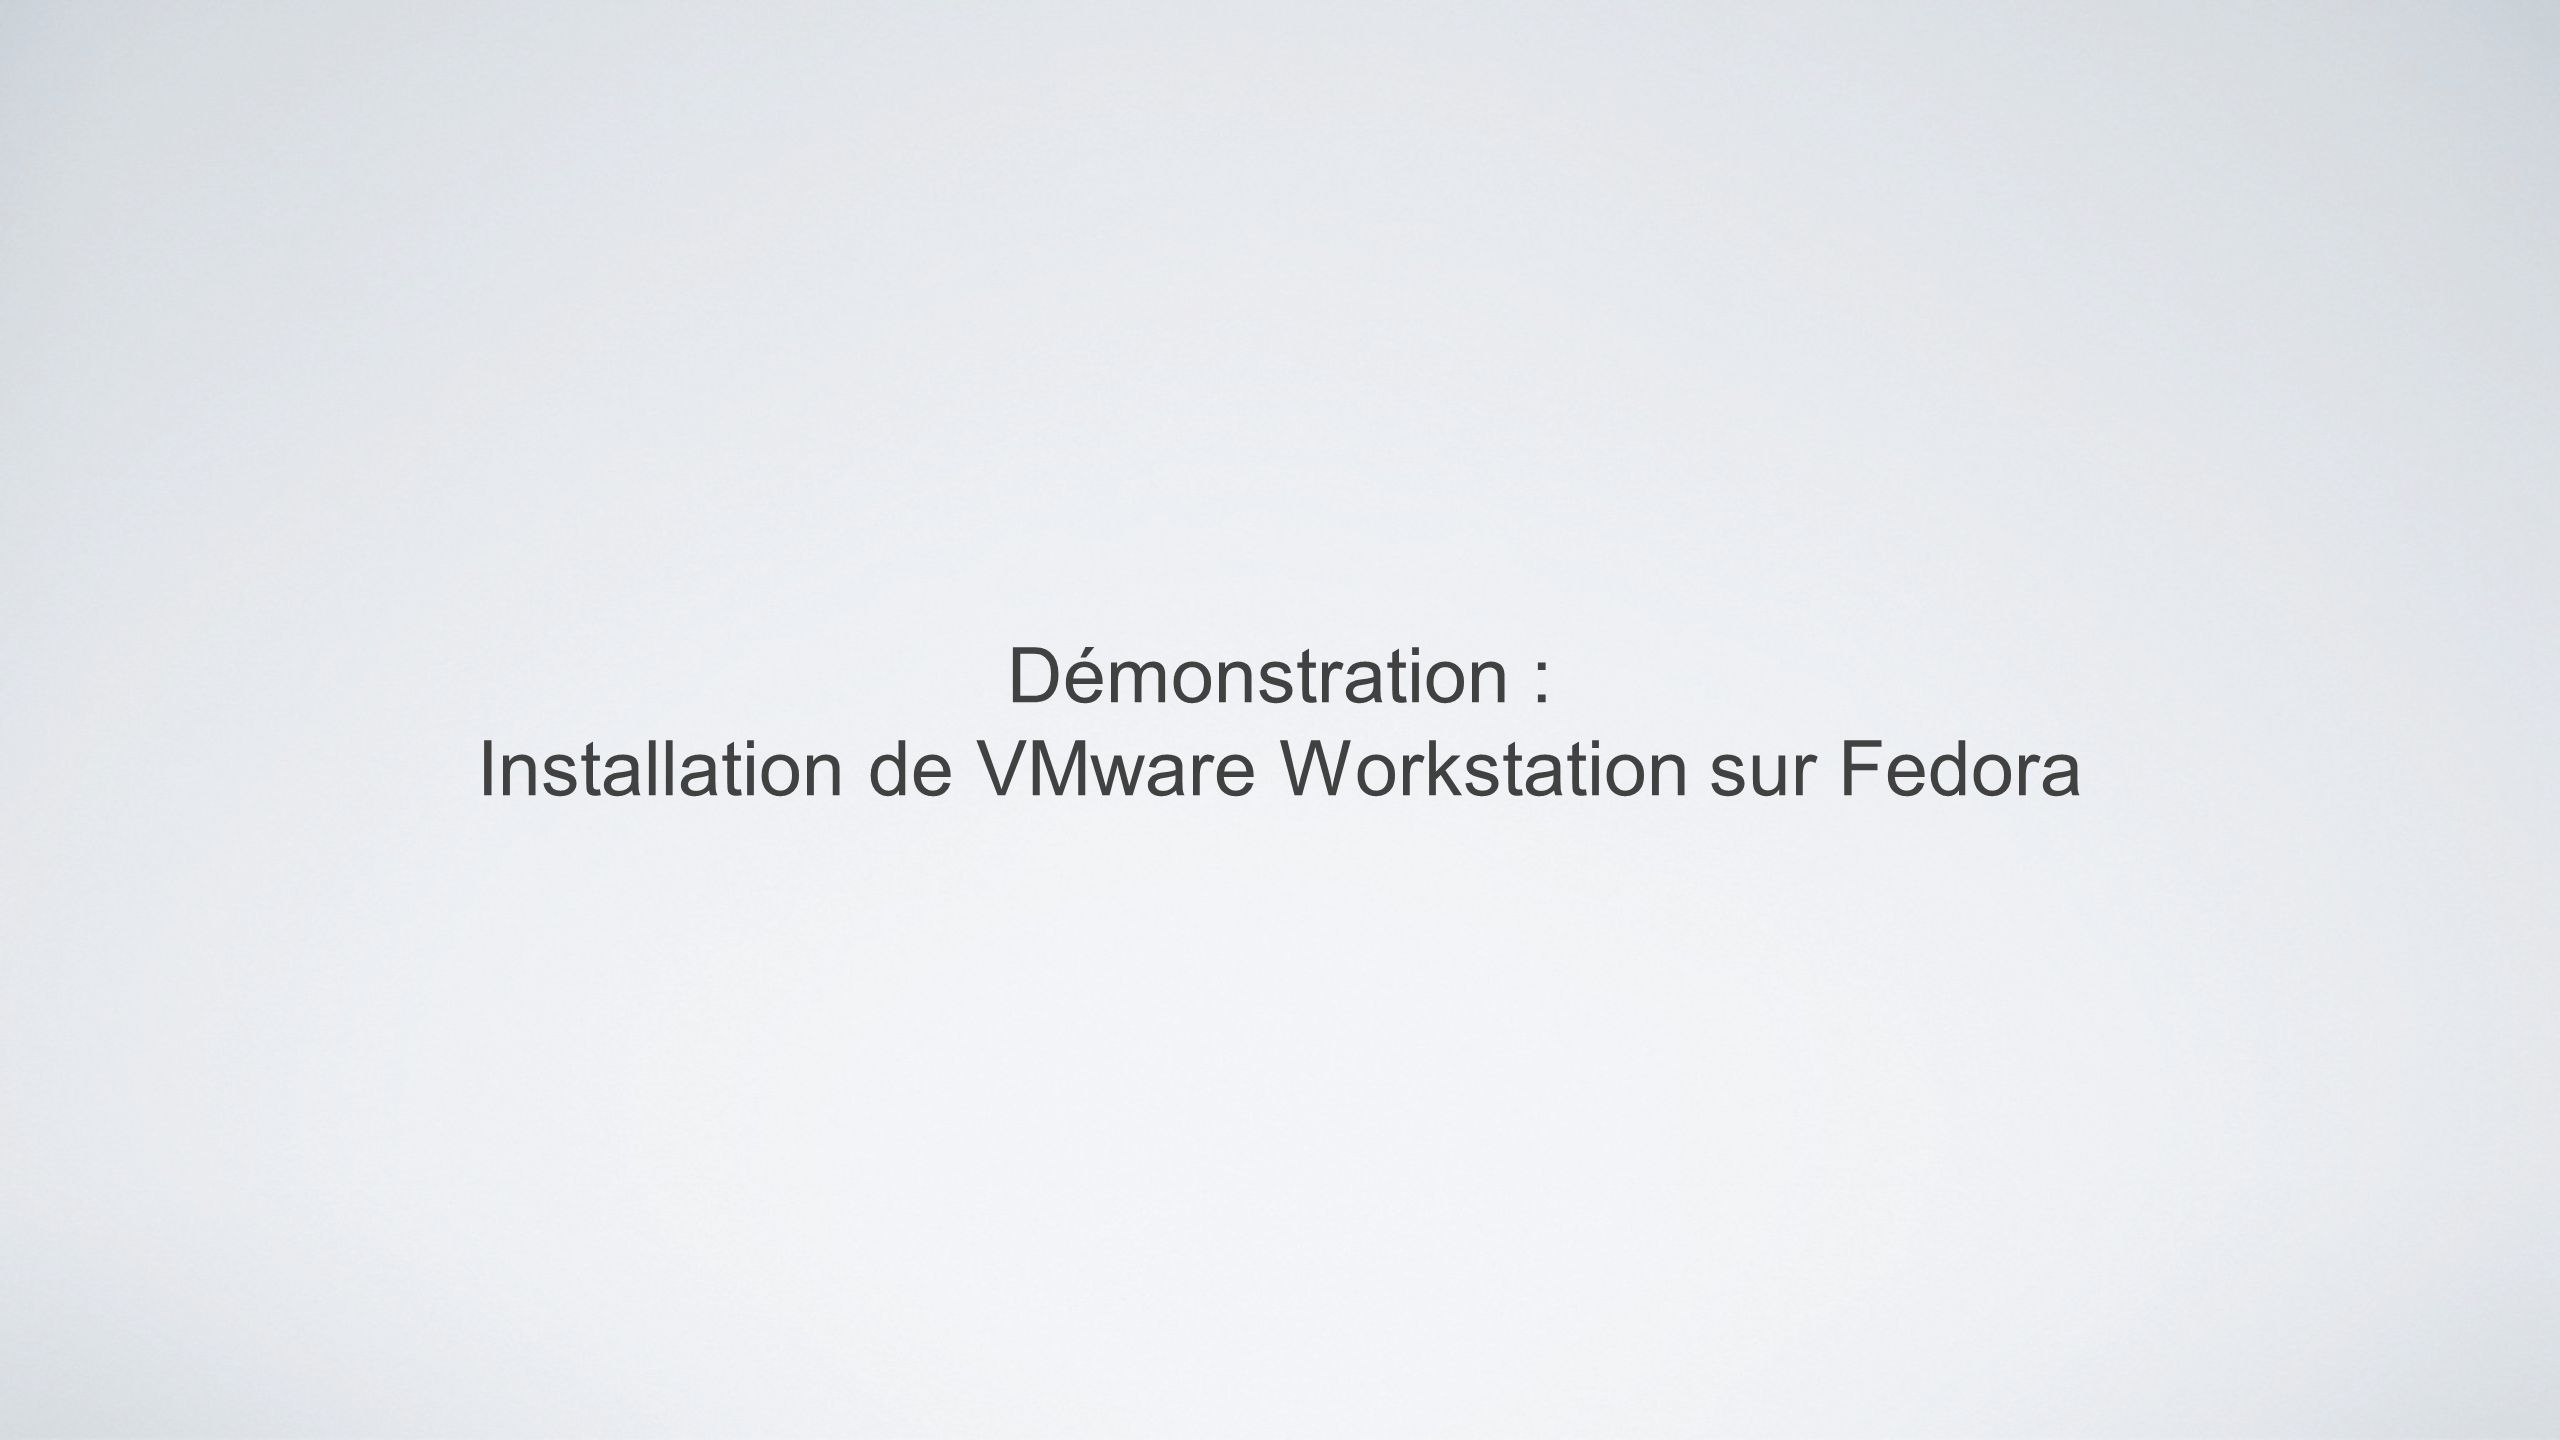 Installation de VMware Workstation sur Fedora